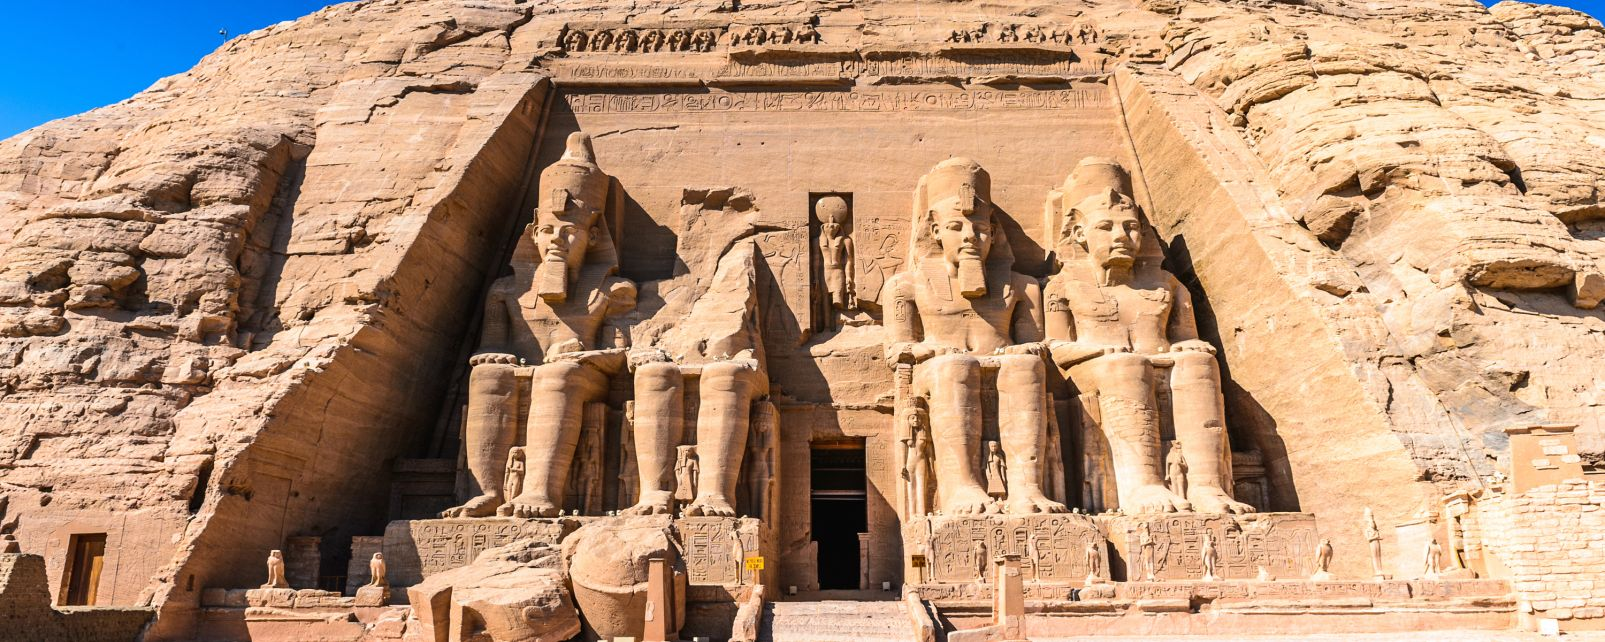 abou-simbel - Photo